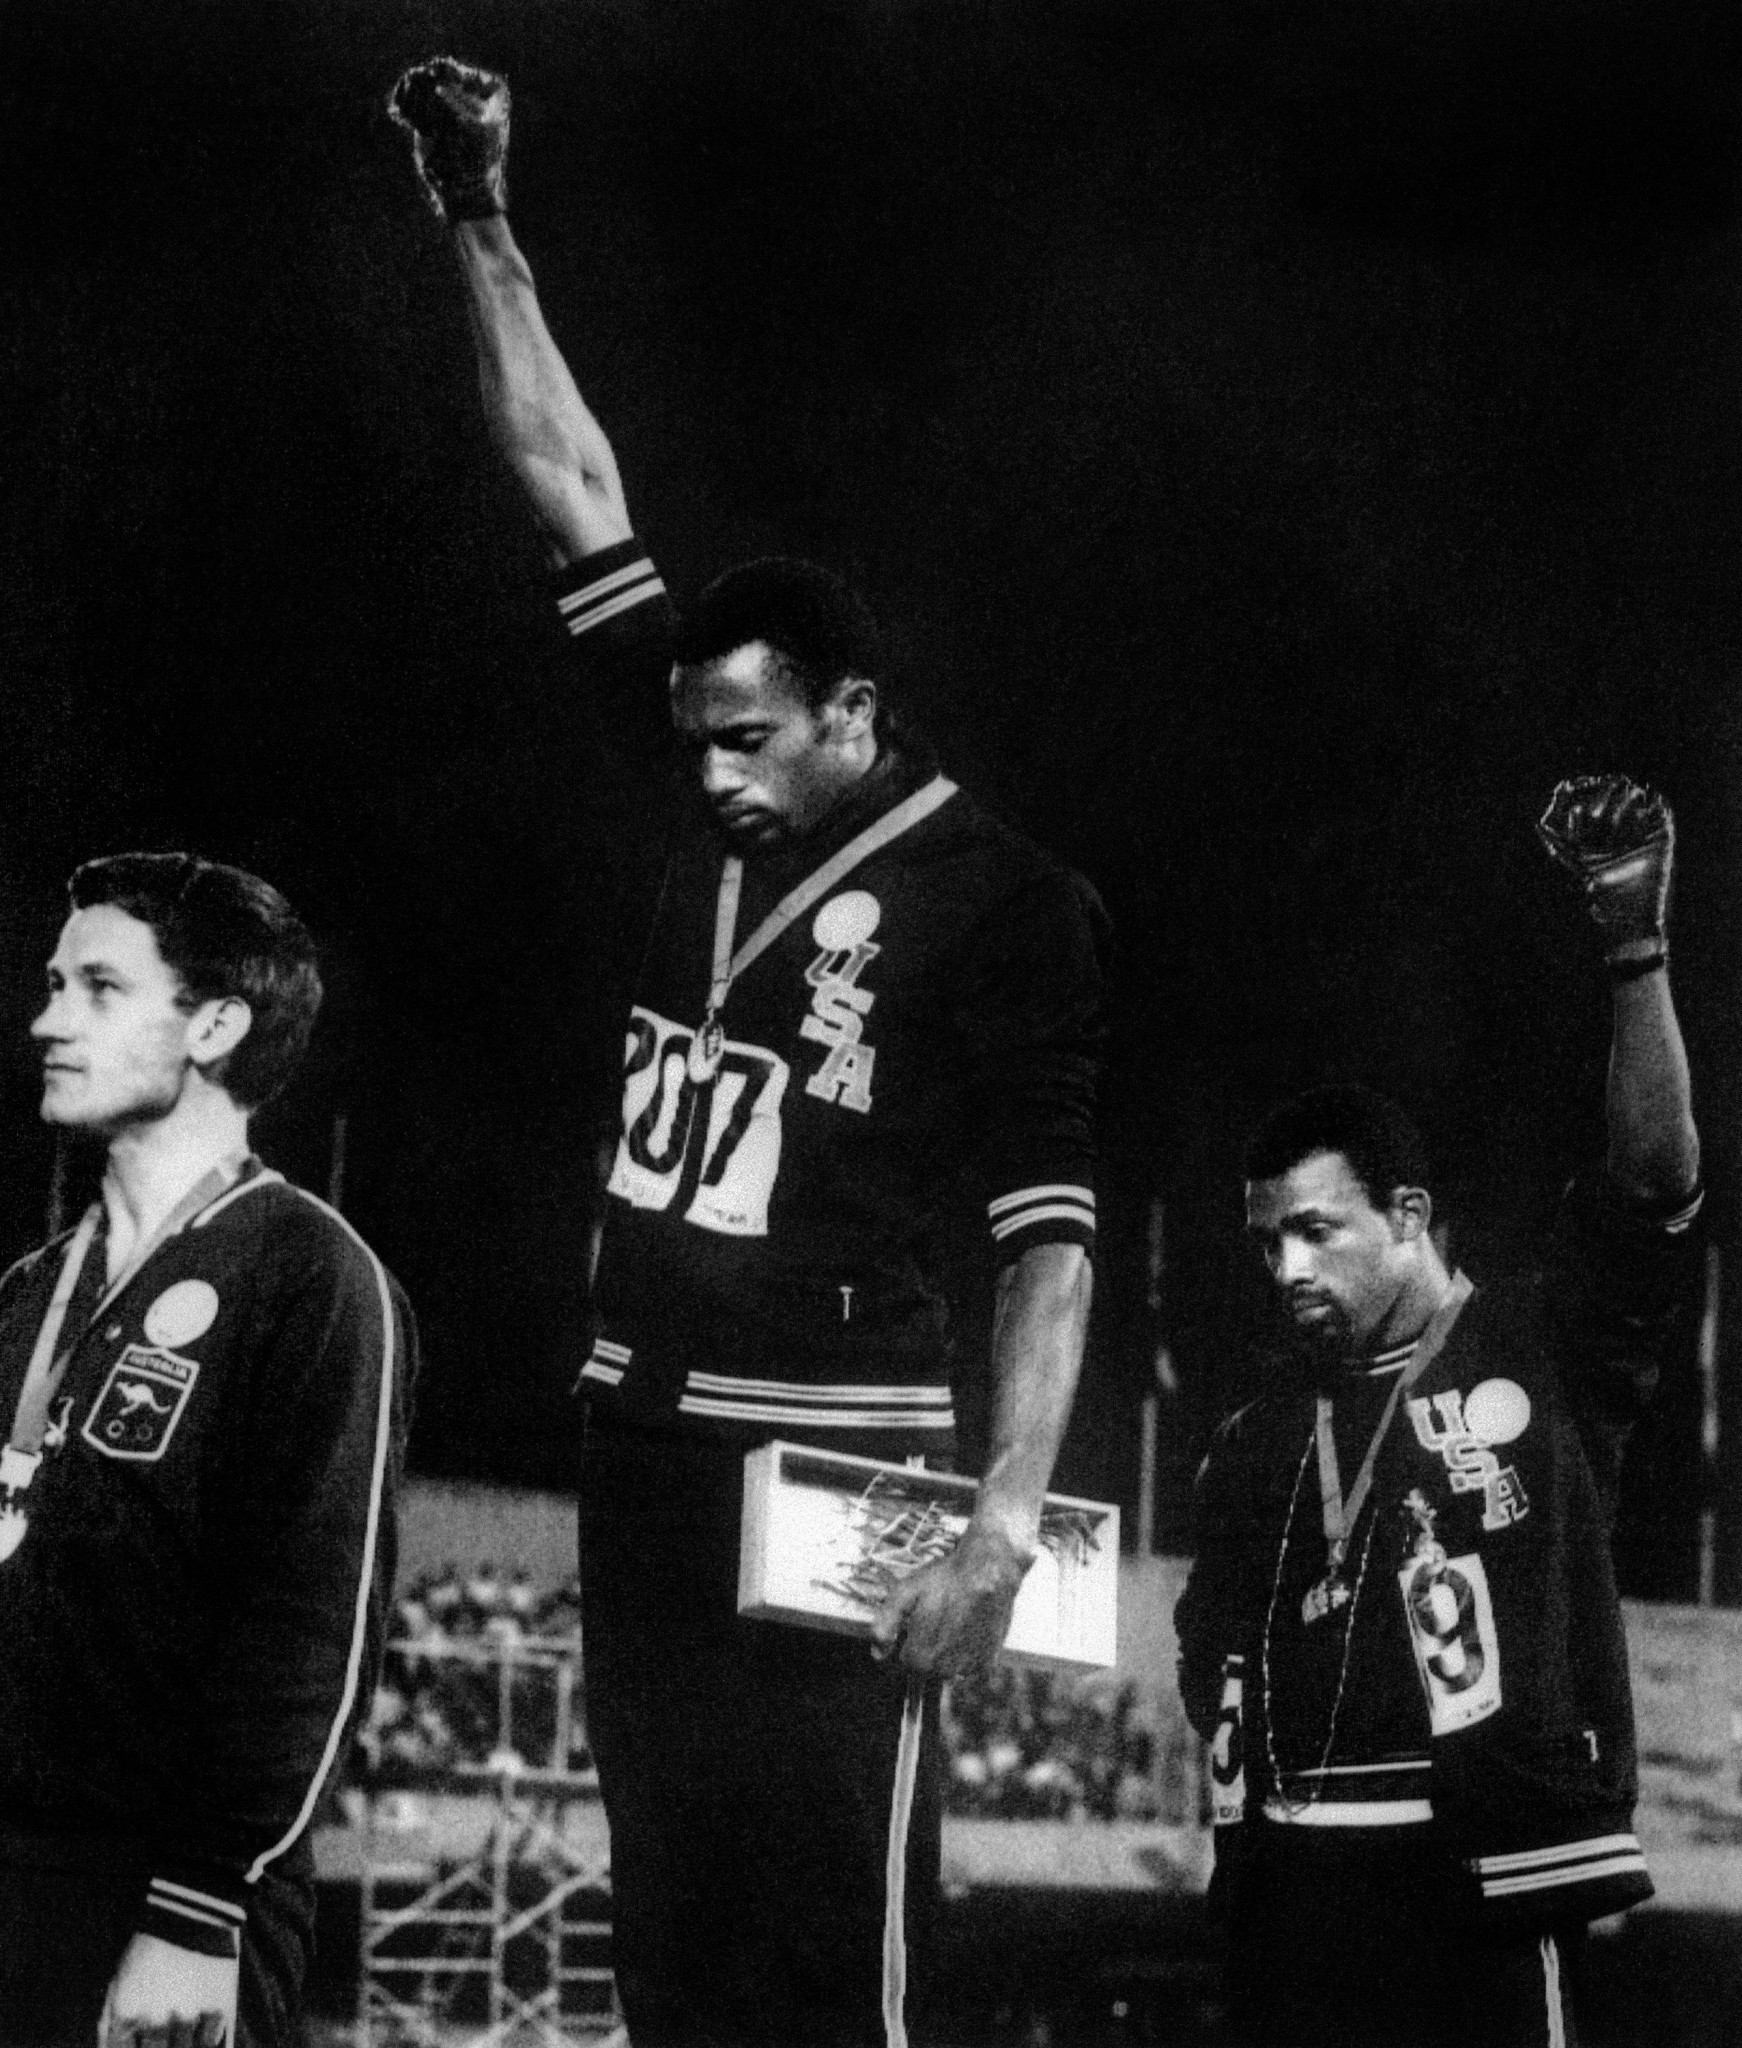 The archetypal sporting political protest – Tommie Smith and John Carlos raise black-gloved fists during the 200m medal ceremony at the 1968 Mexico City Olympics ©Getty Images